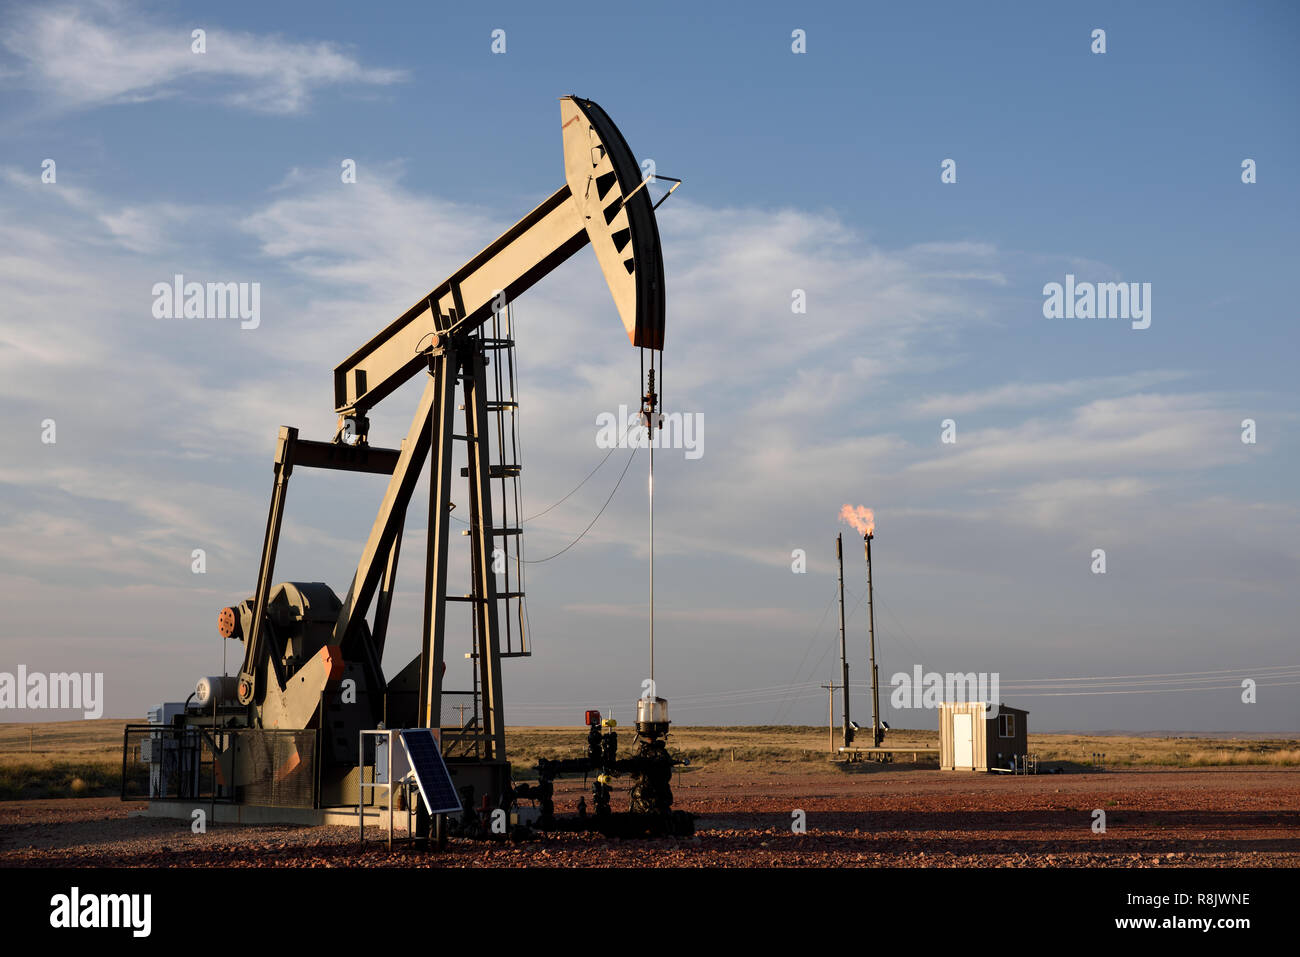 Natural gas flare and crude oil pump jack, Niobrara shale oil and gas production in Wyoming, with copy space. - Stock Image